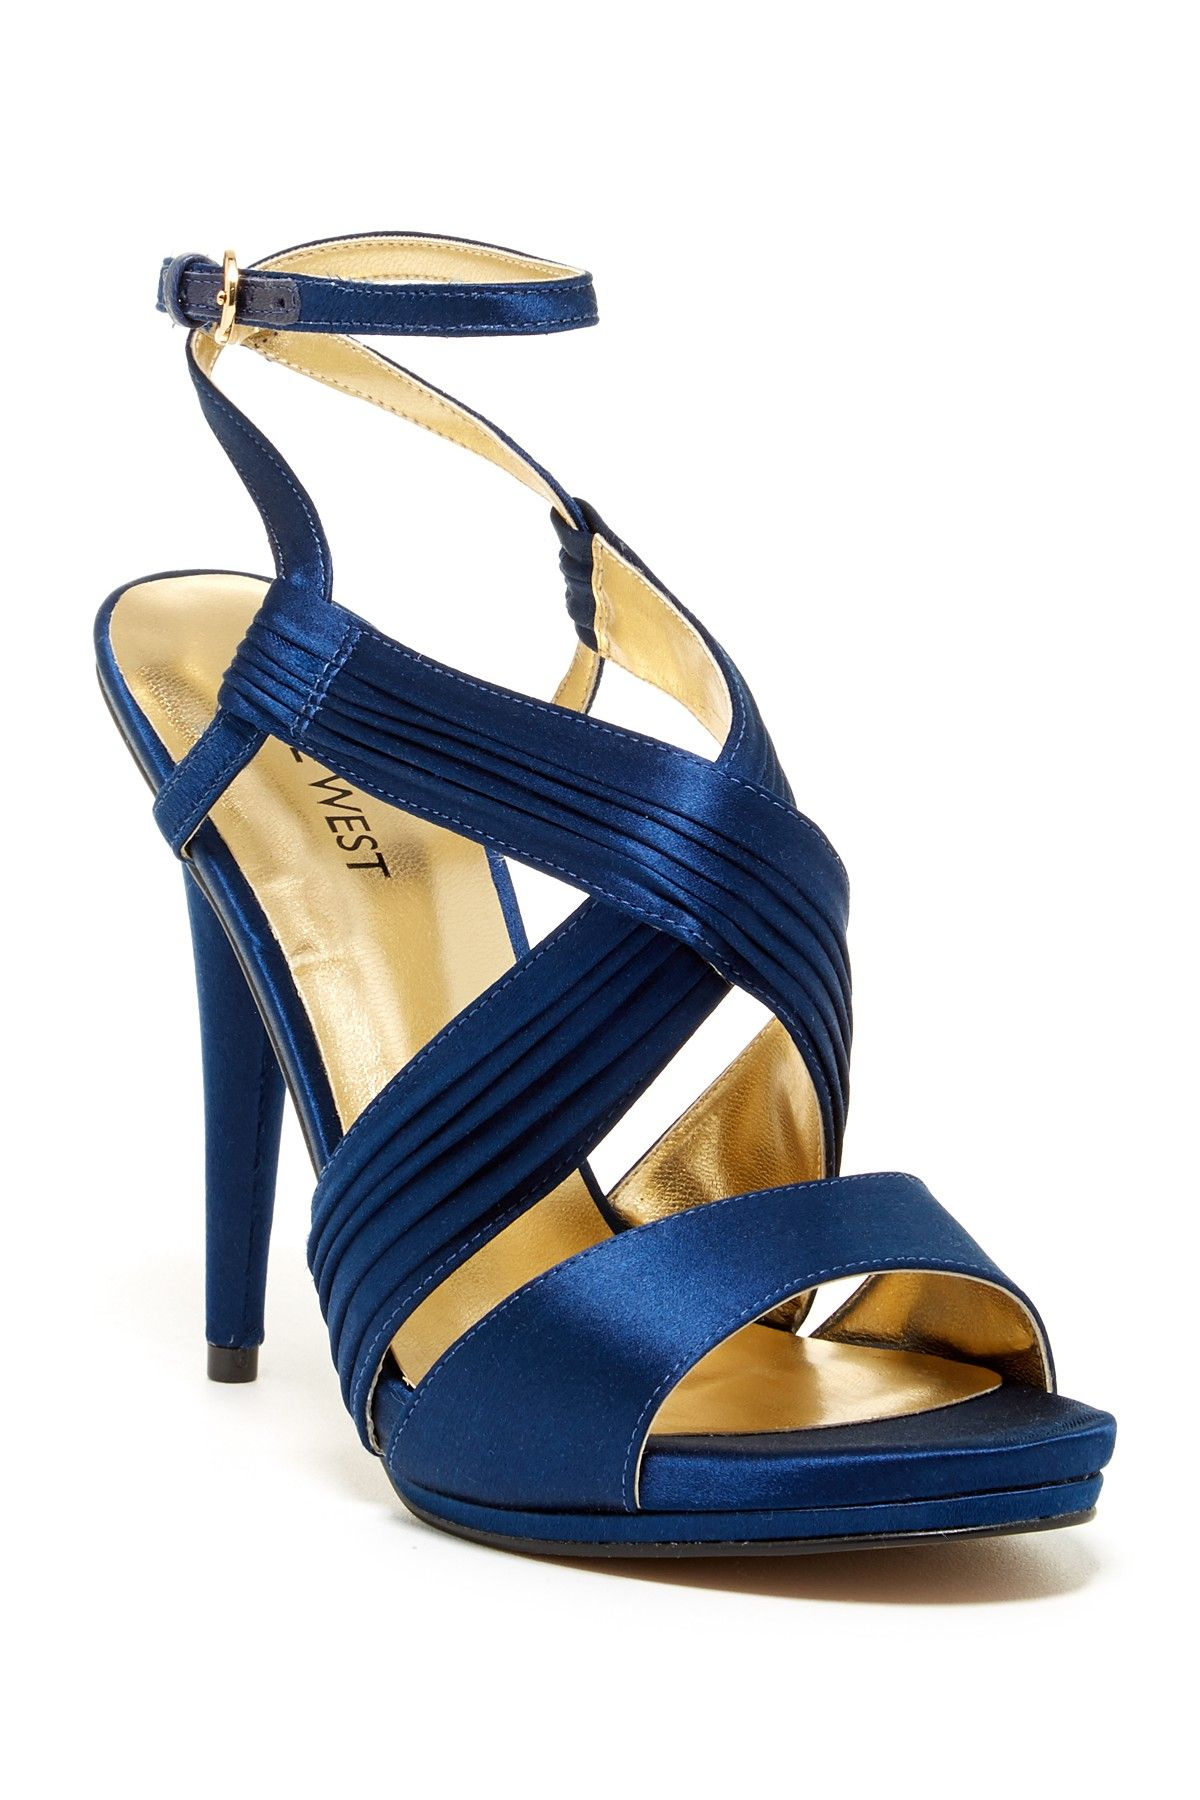 Crisscross vamp with pleated detail  - Adjustable ankle buckle strap closure